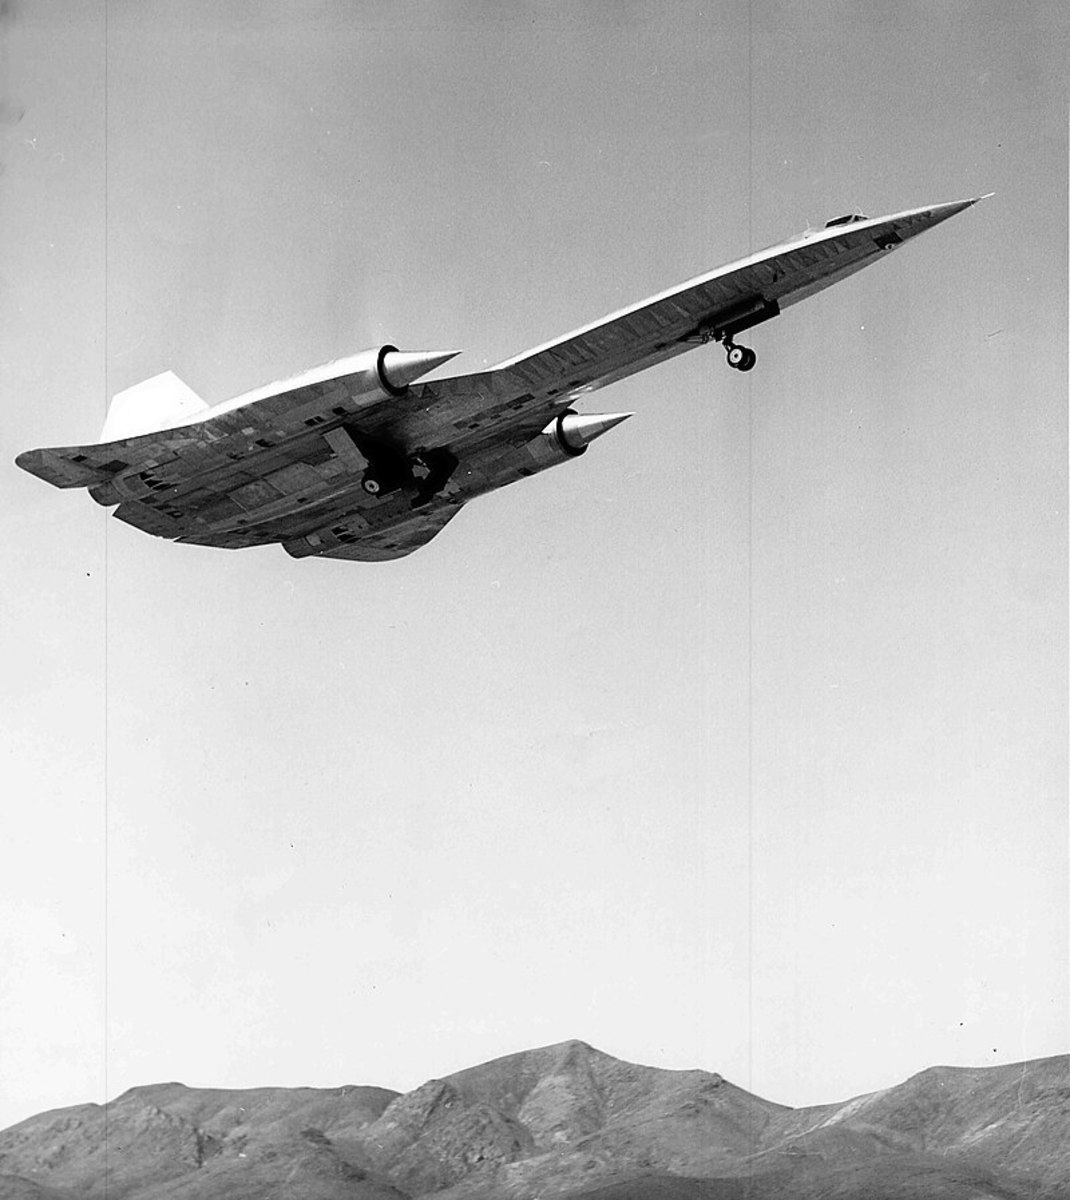 An A-12 (SR-71) takes off from Groom Lake during one of the first test flights, piloted by Louis Schalk, April 26, 1962.